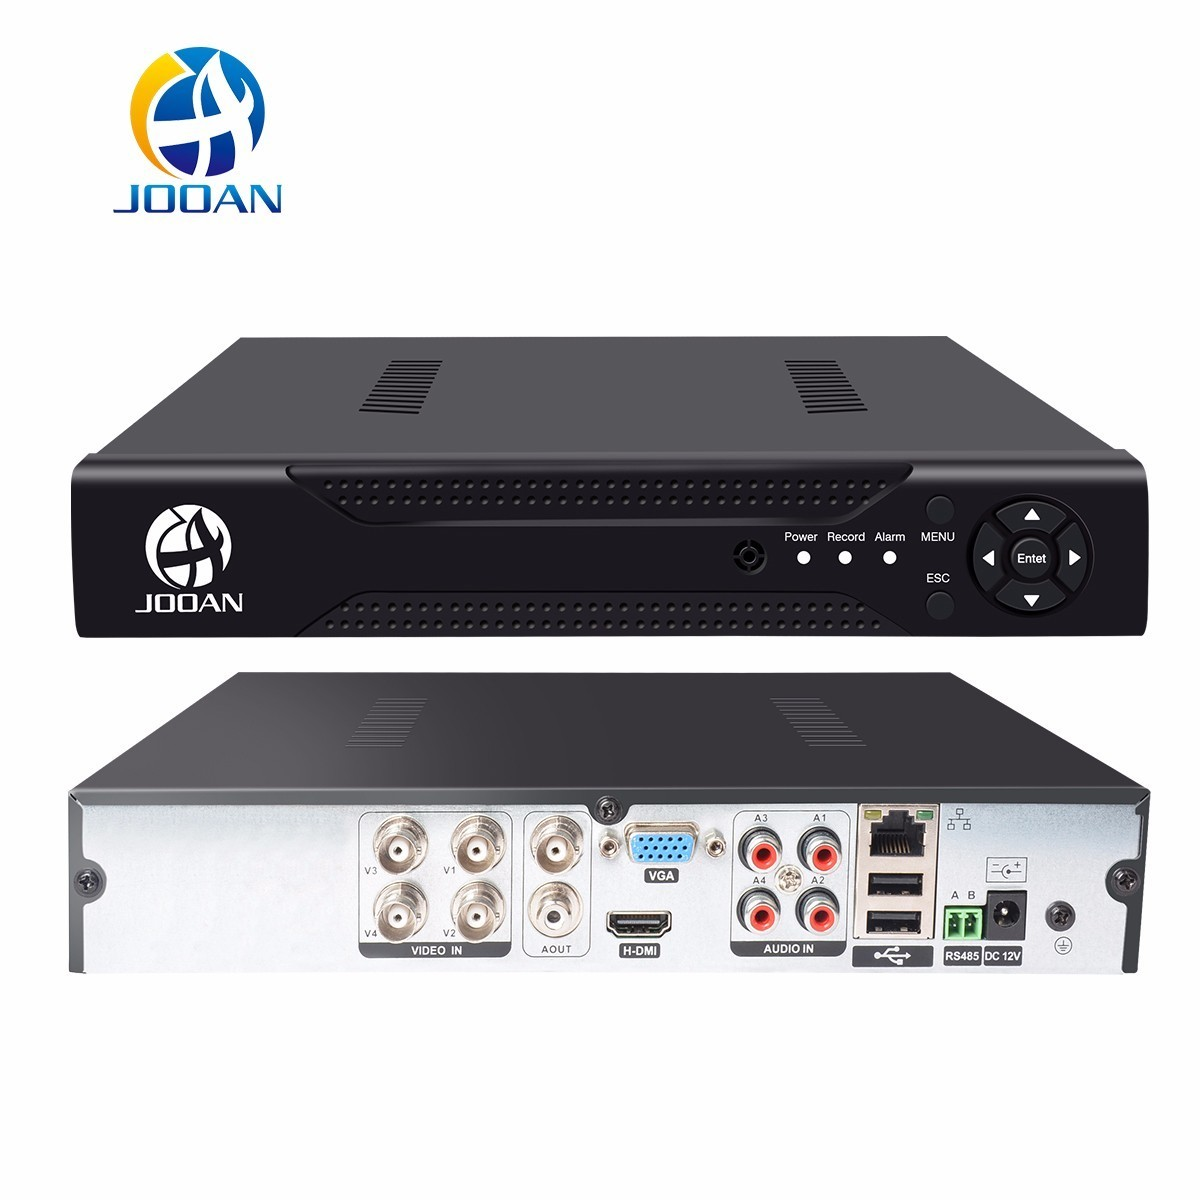 JOOAN 4CH 8CH 16CH CCTV DVR Security System 1080N H.264 HD-Output P2P Hybrid 5 in 1 Onvif IP Camera TVI CVI AHD Video Recorder 8channel dvr 1080p hybrid xvr 16ch for ahd h cvi tvi camera p2p ip recorder onvif network cvr mini nvr h 264 for 2mp ip camera